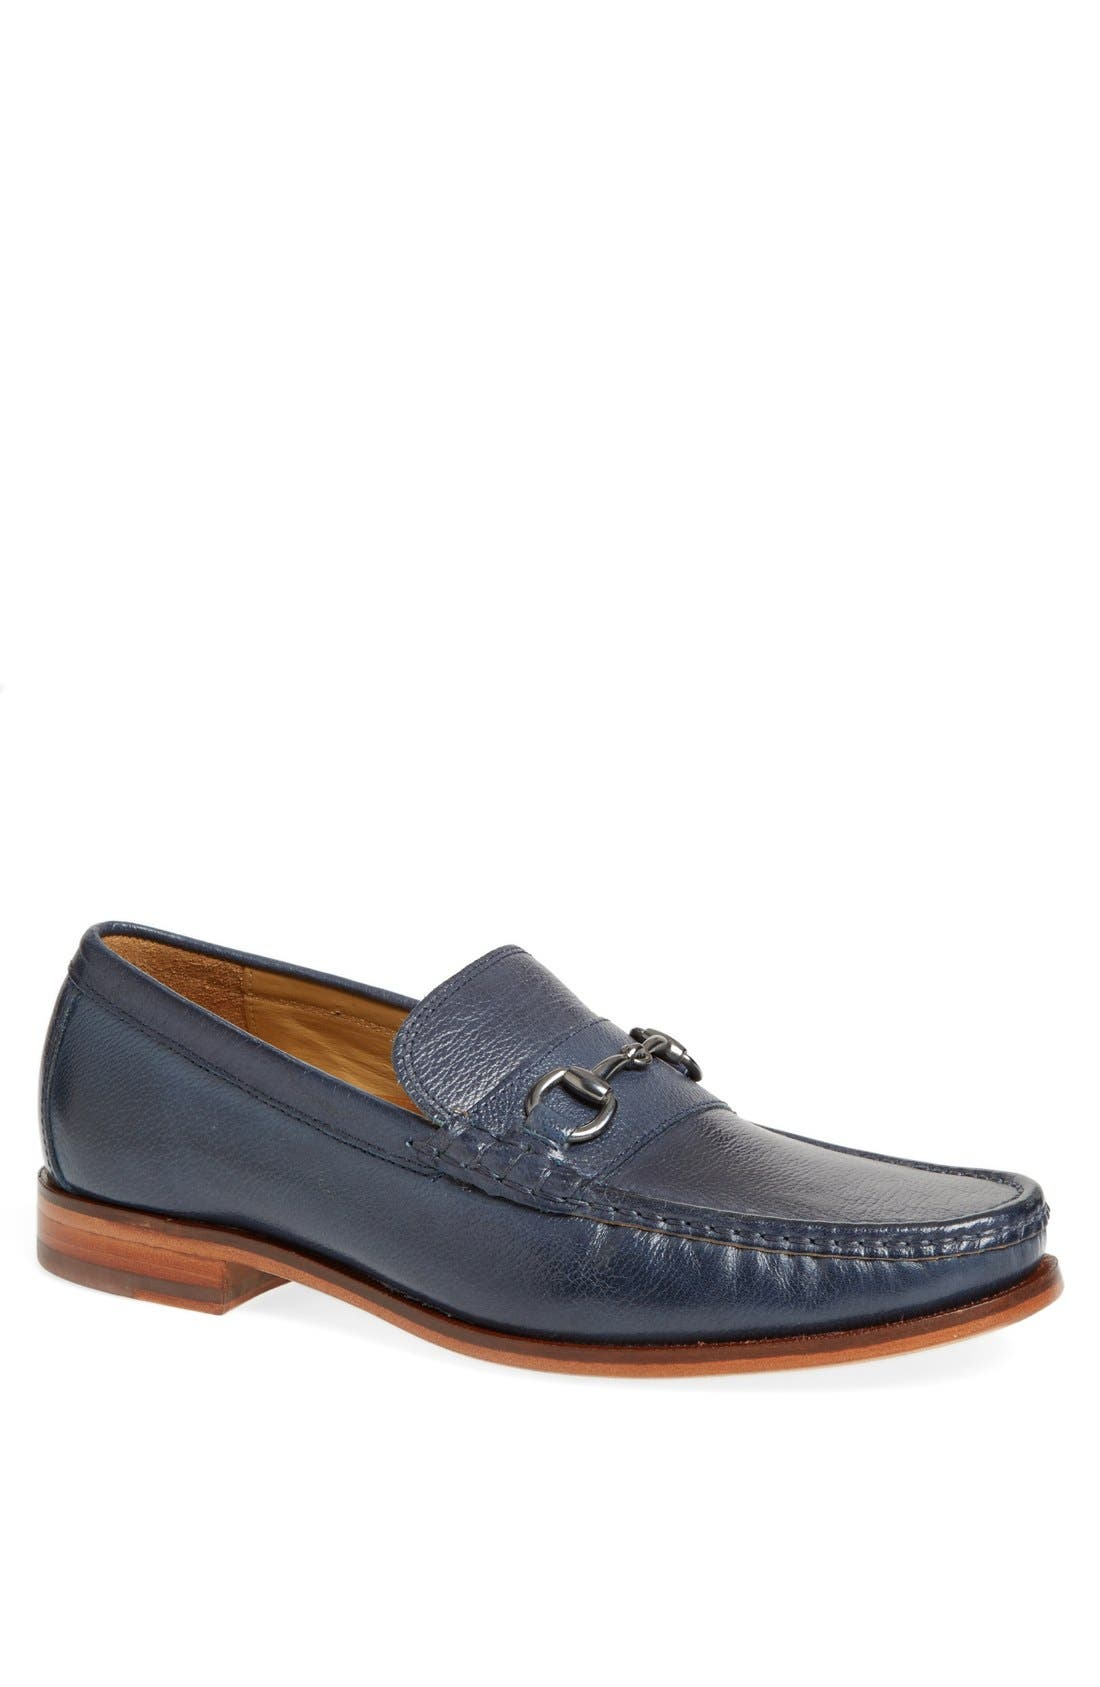 Main Image - Cole Haan 'Hudson Square' Bit Loafer   (Men)